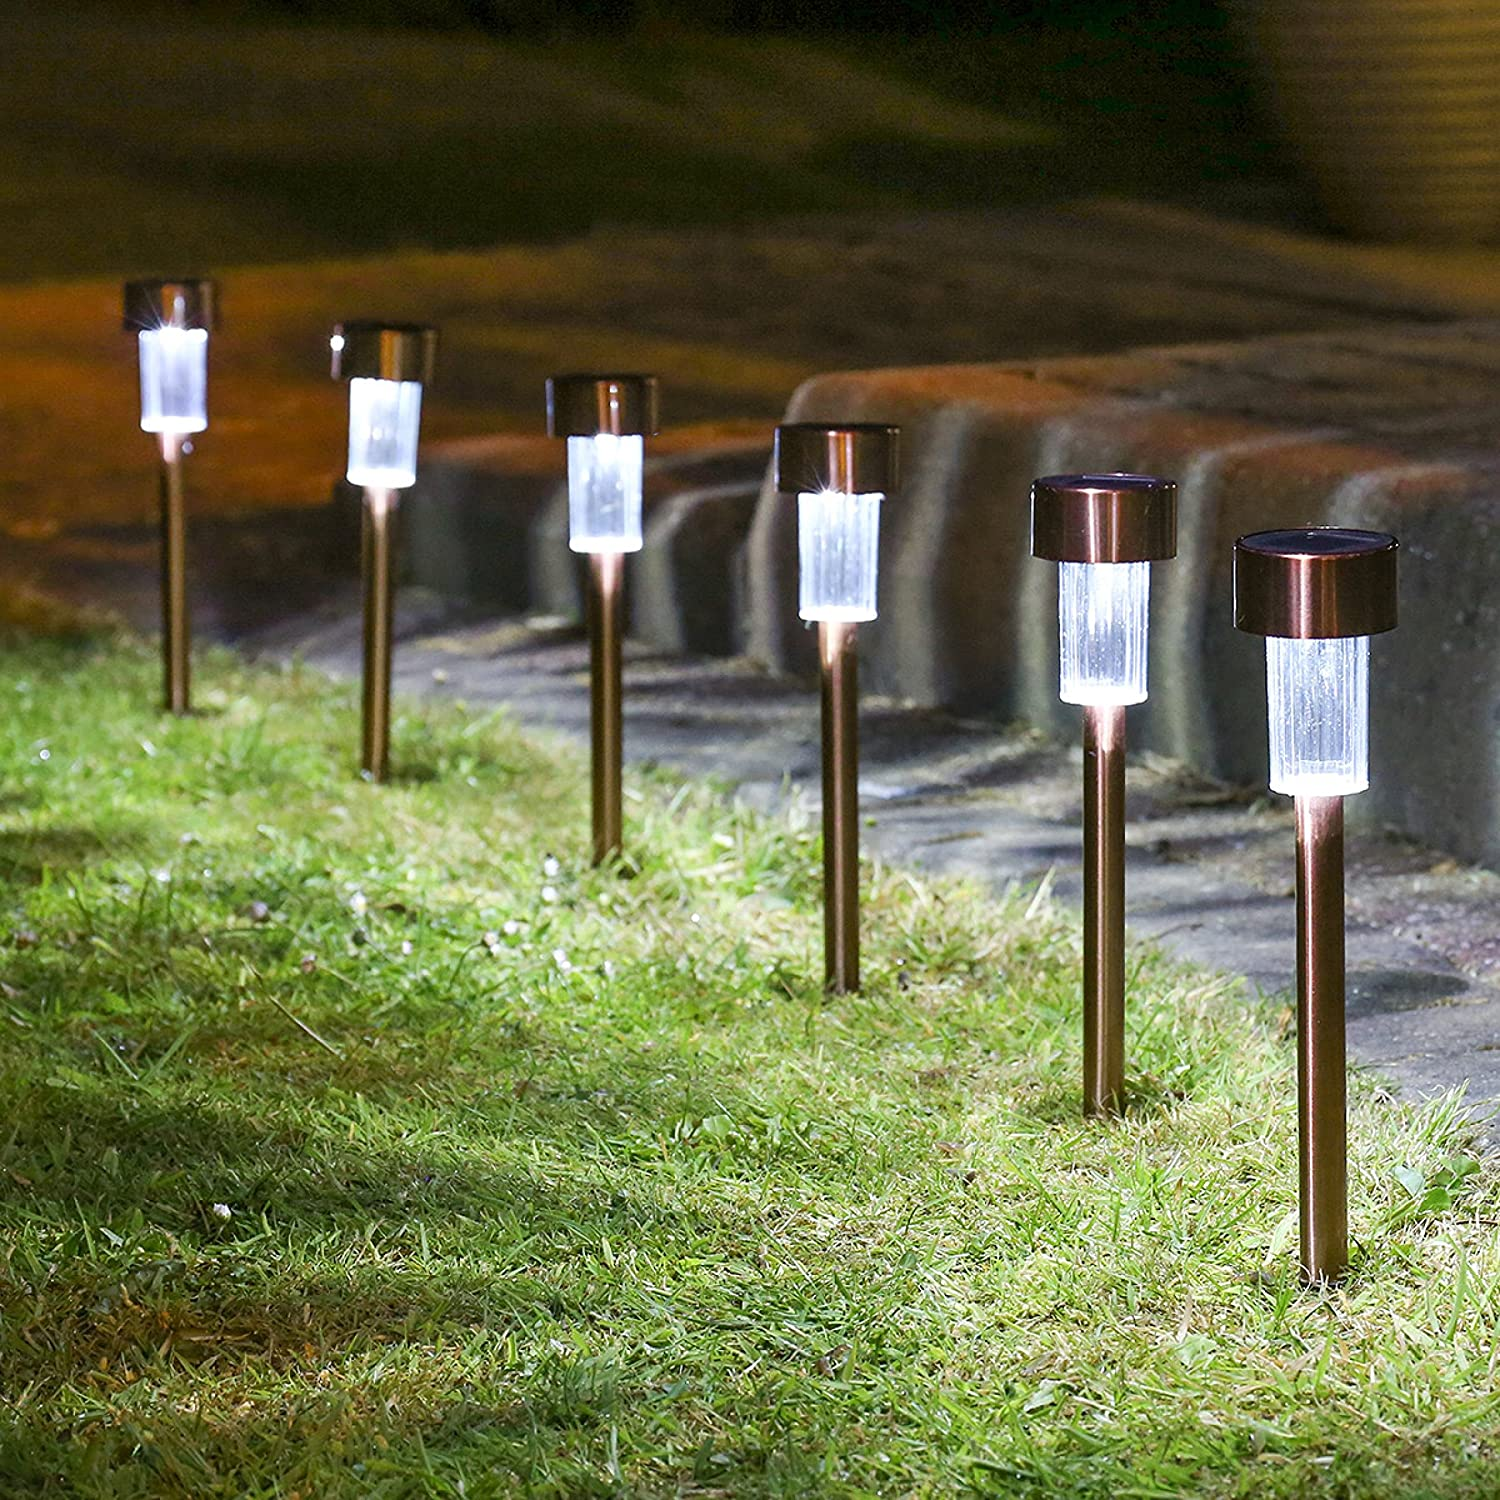 Best Solar Outdoor Patio Lights: 10 X STAINLESS STEEL SOLAR LIGHTS POWERED GARDEN POST PATH